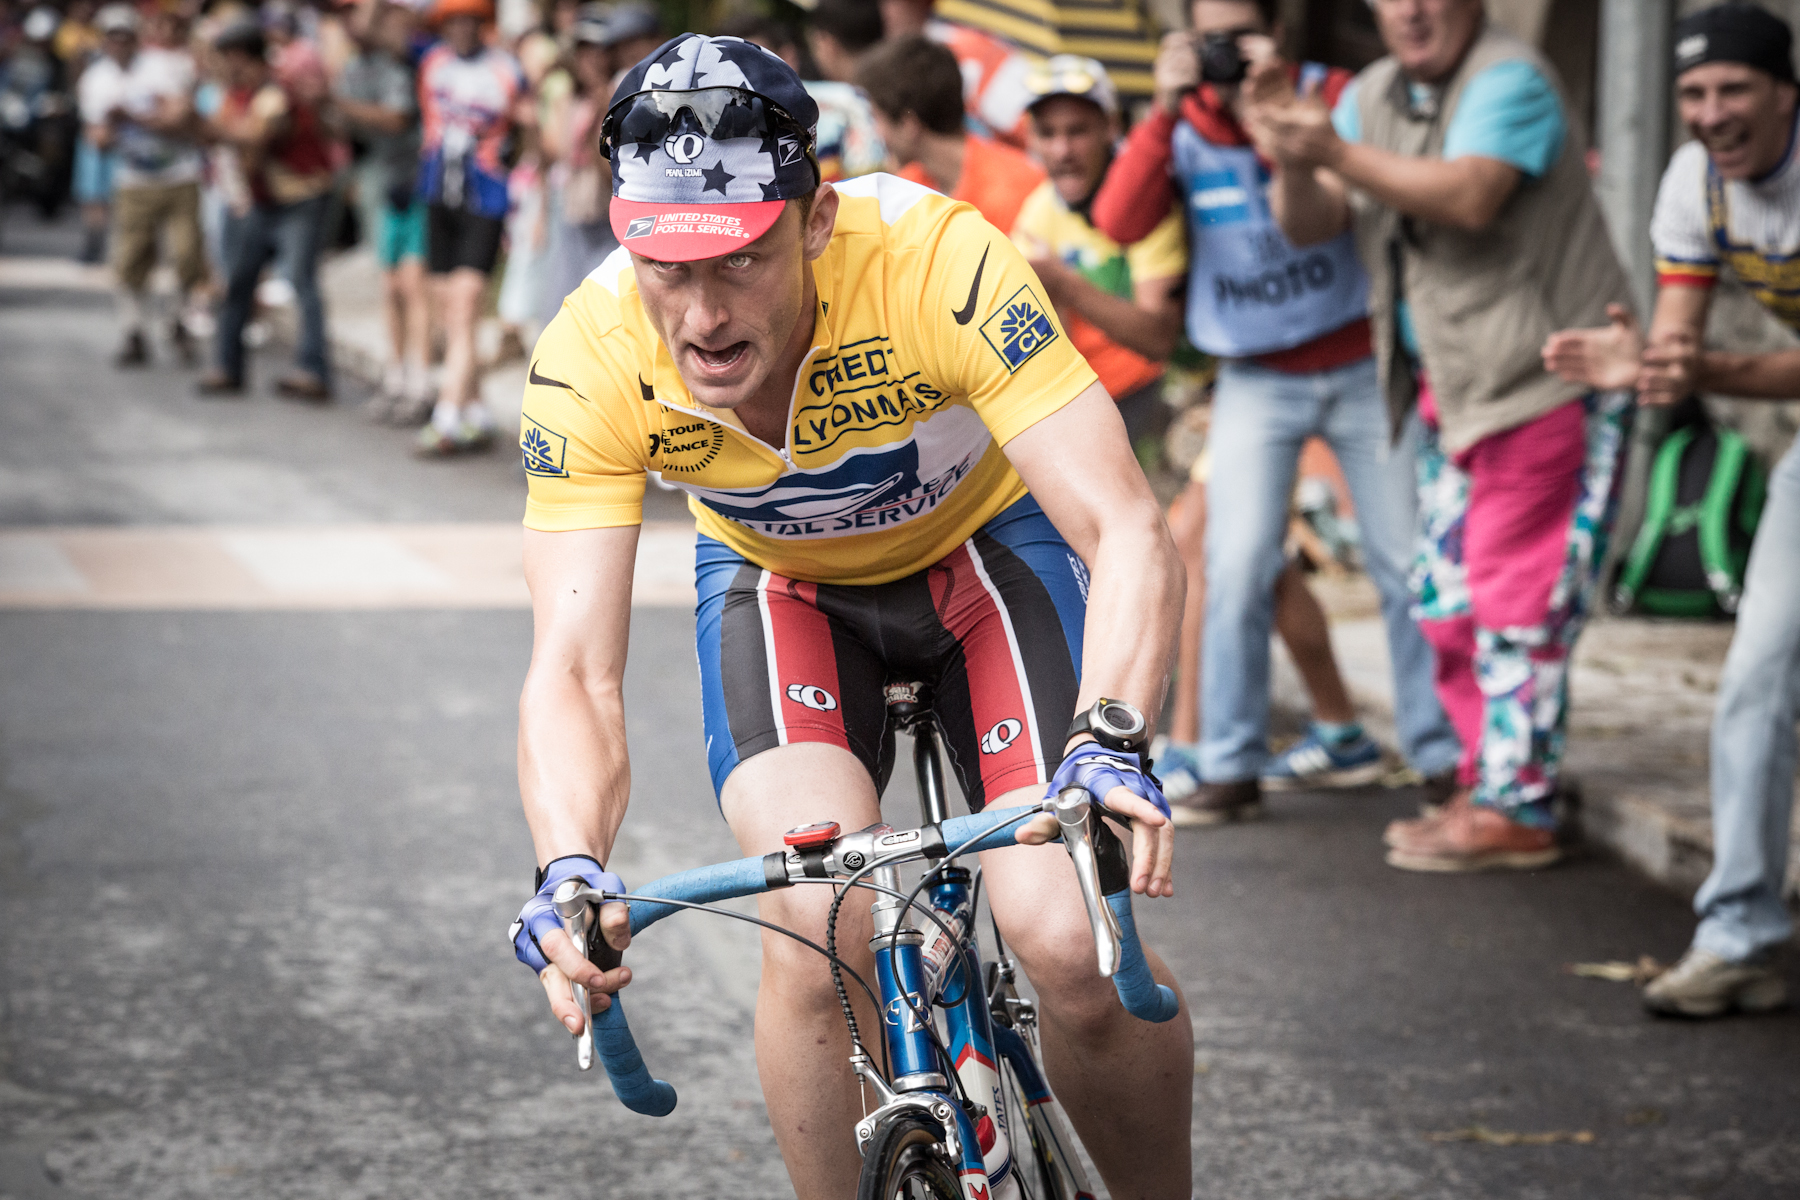 Ben Foster - Lance armstrong - Copyright Working Title Films